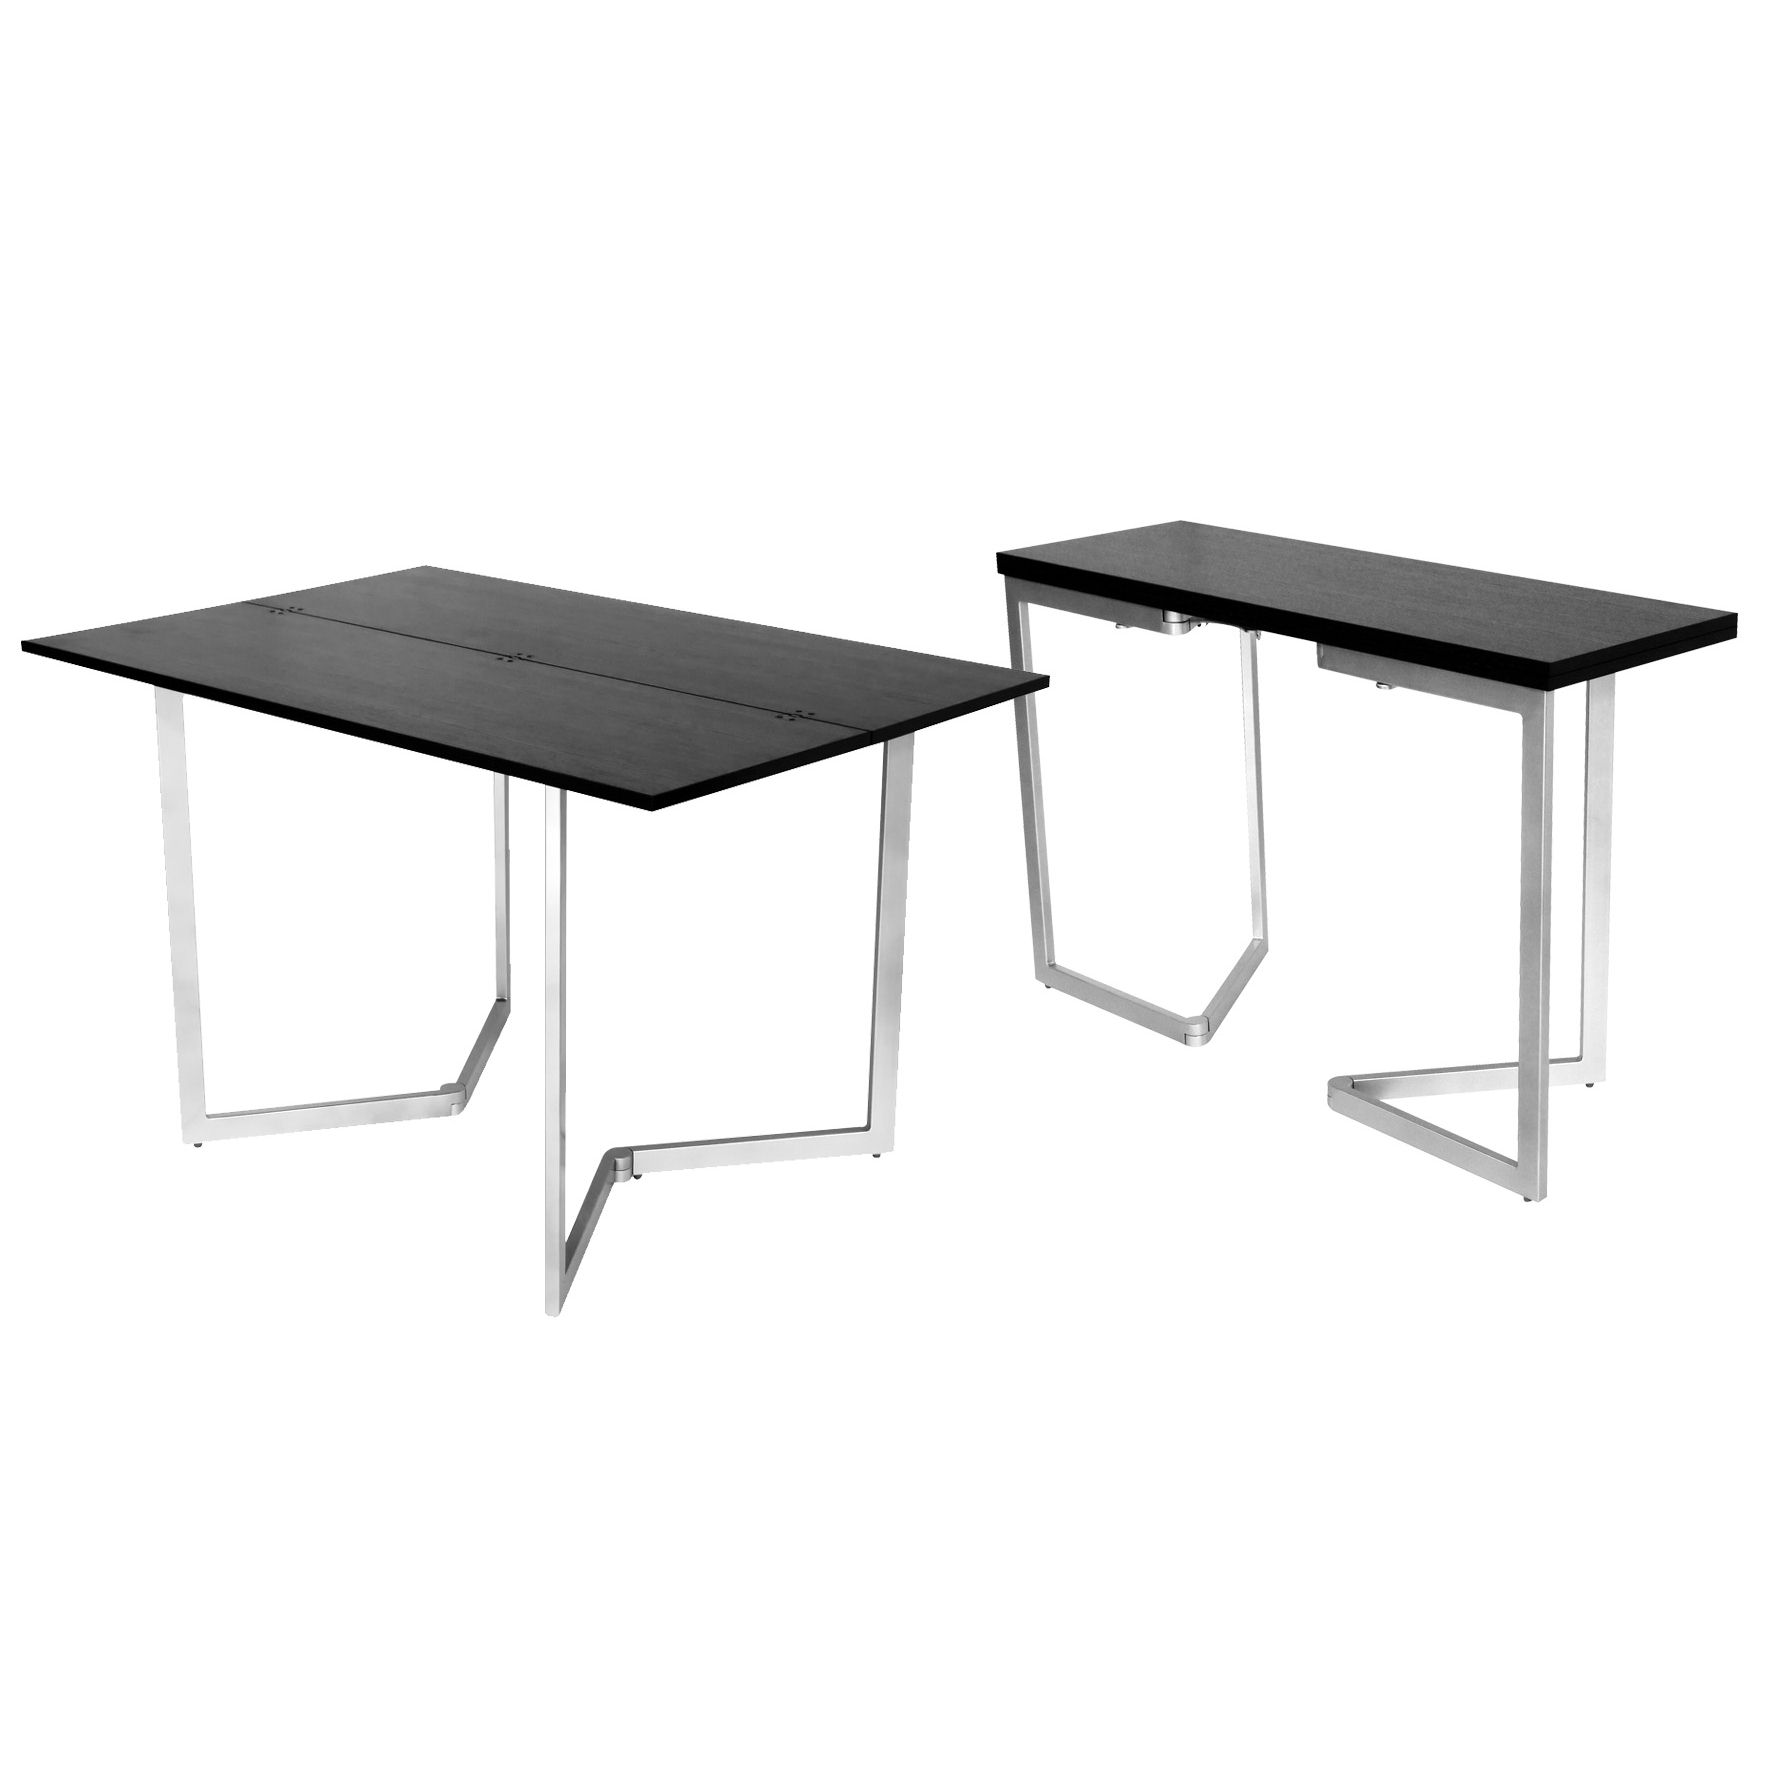 Deco in paris table console extensible wenge talia console talia wenge god - Console extensible pas chere ...